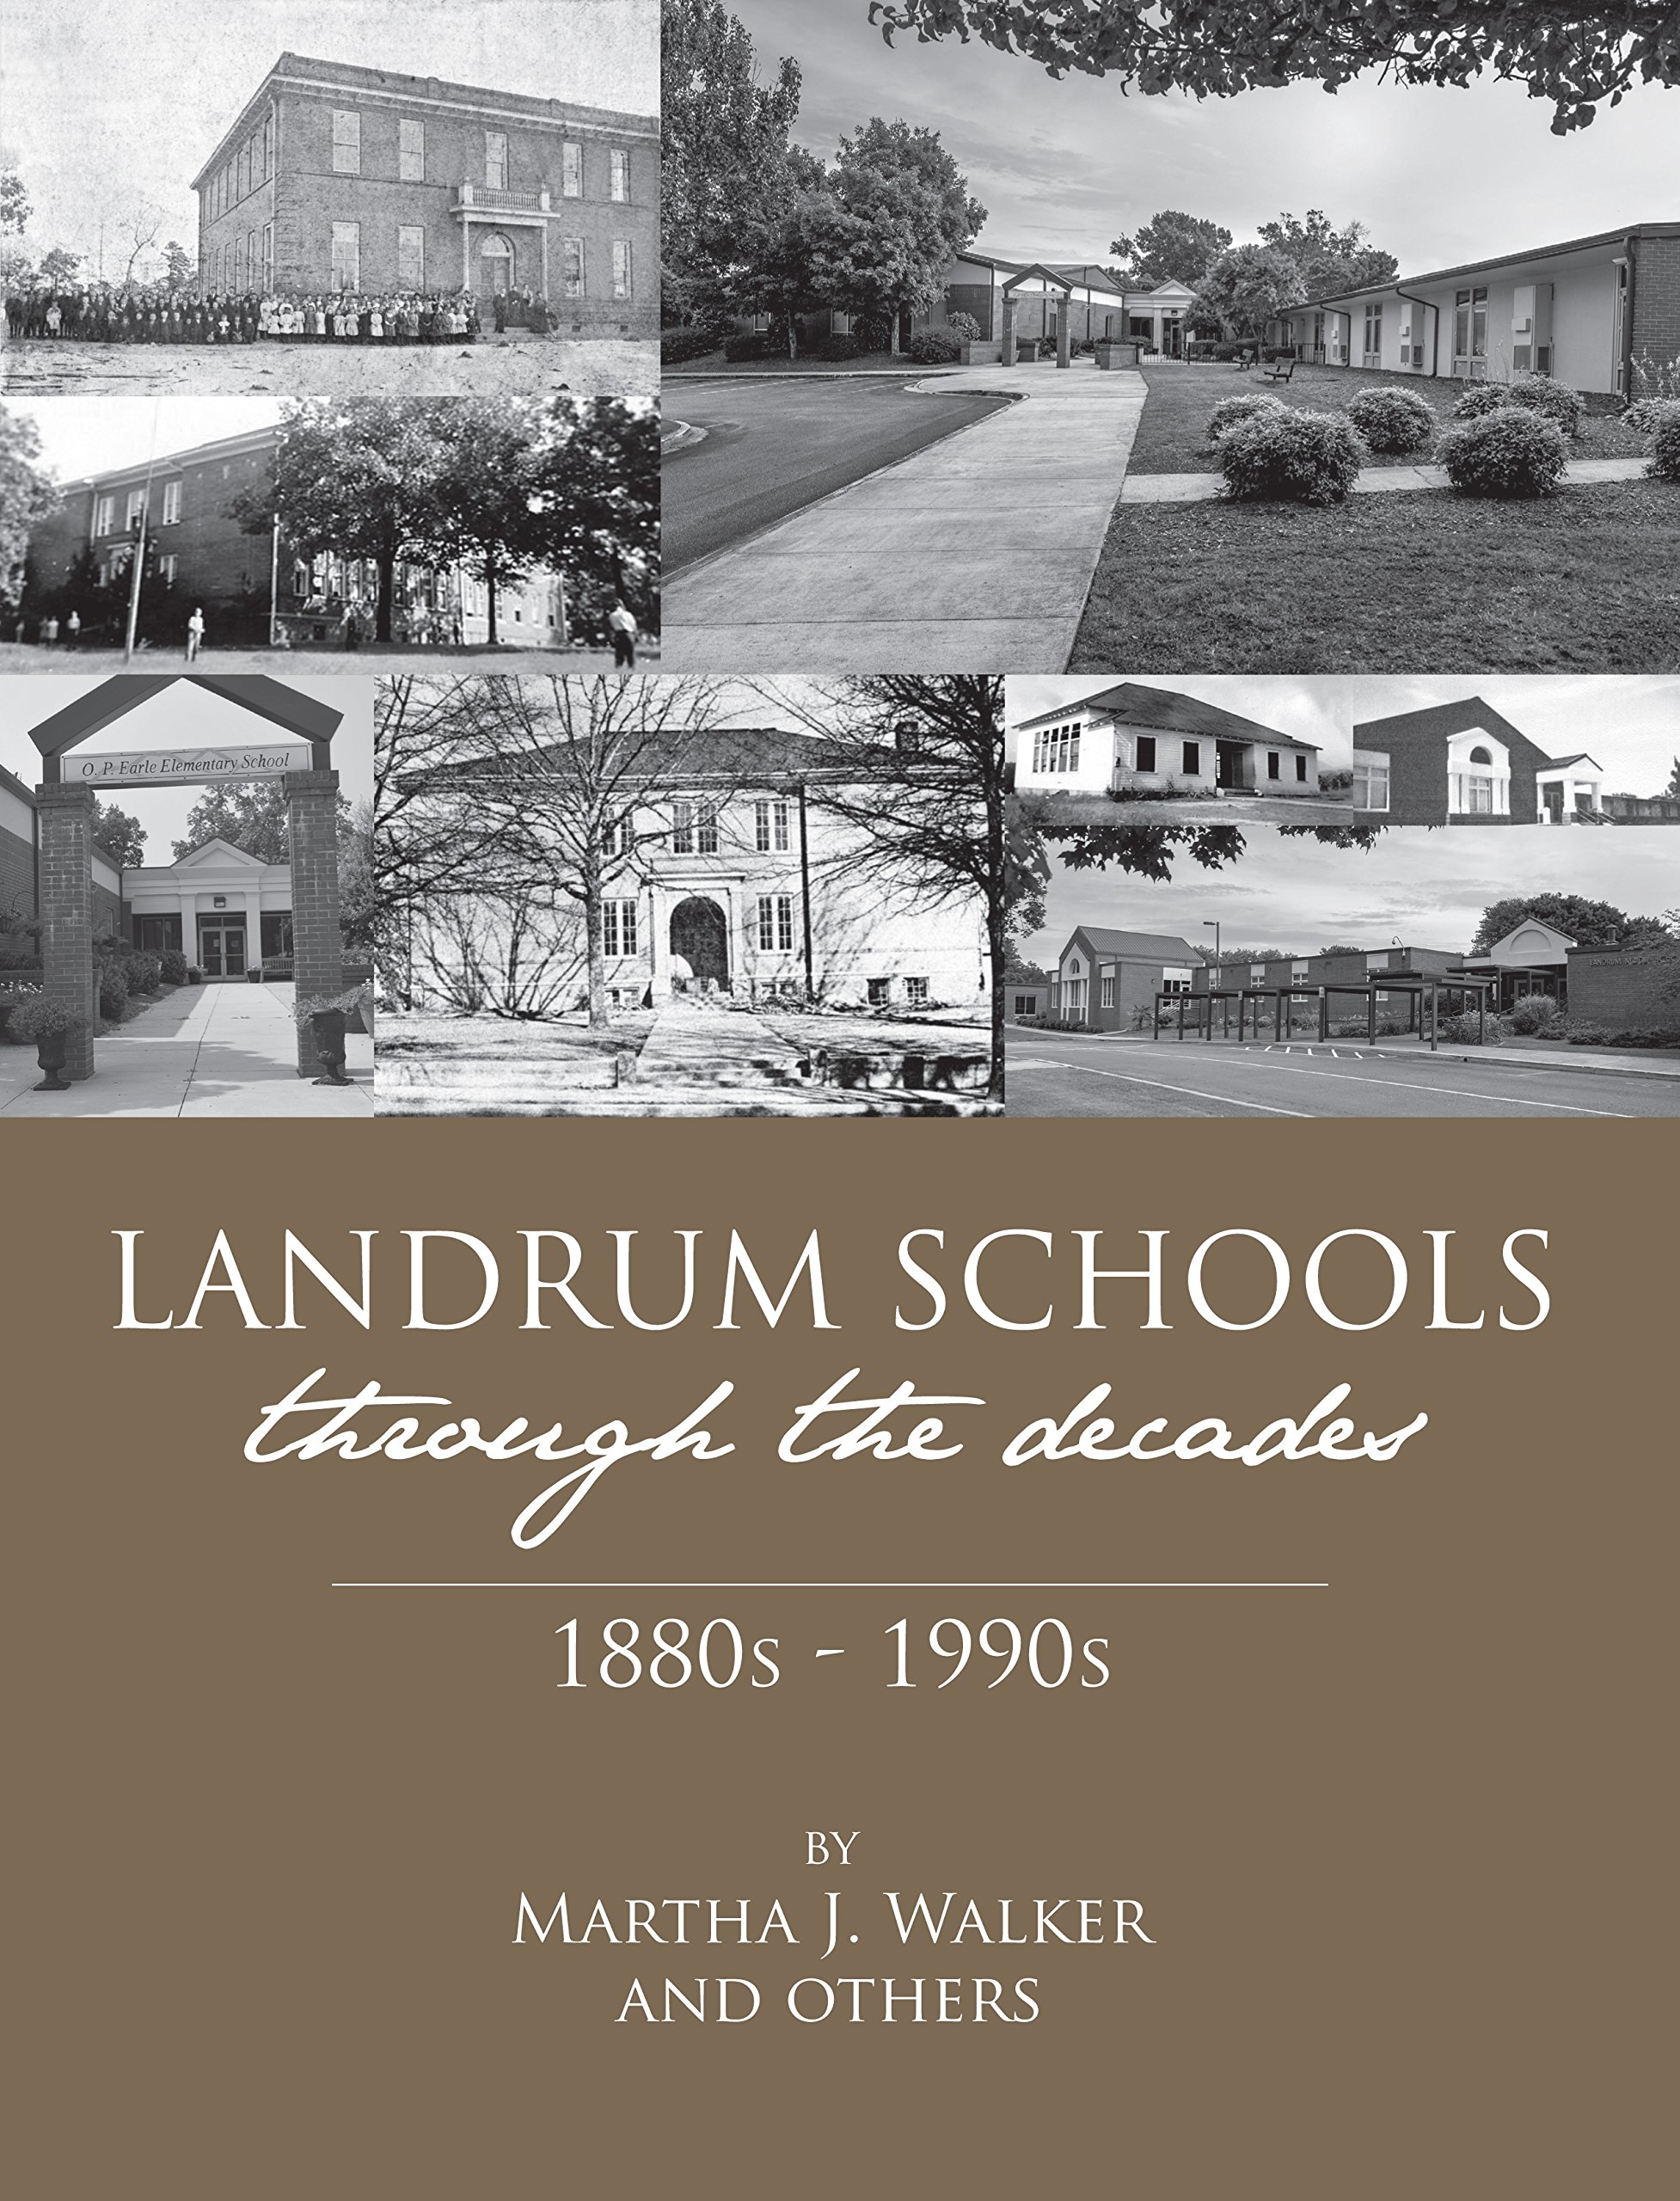 Landrum Schools book cover